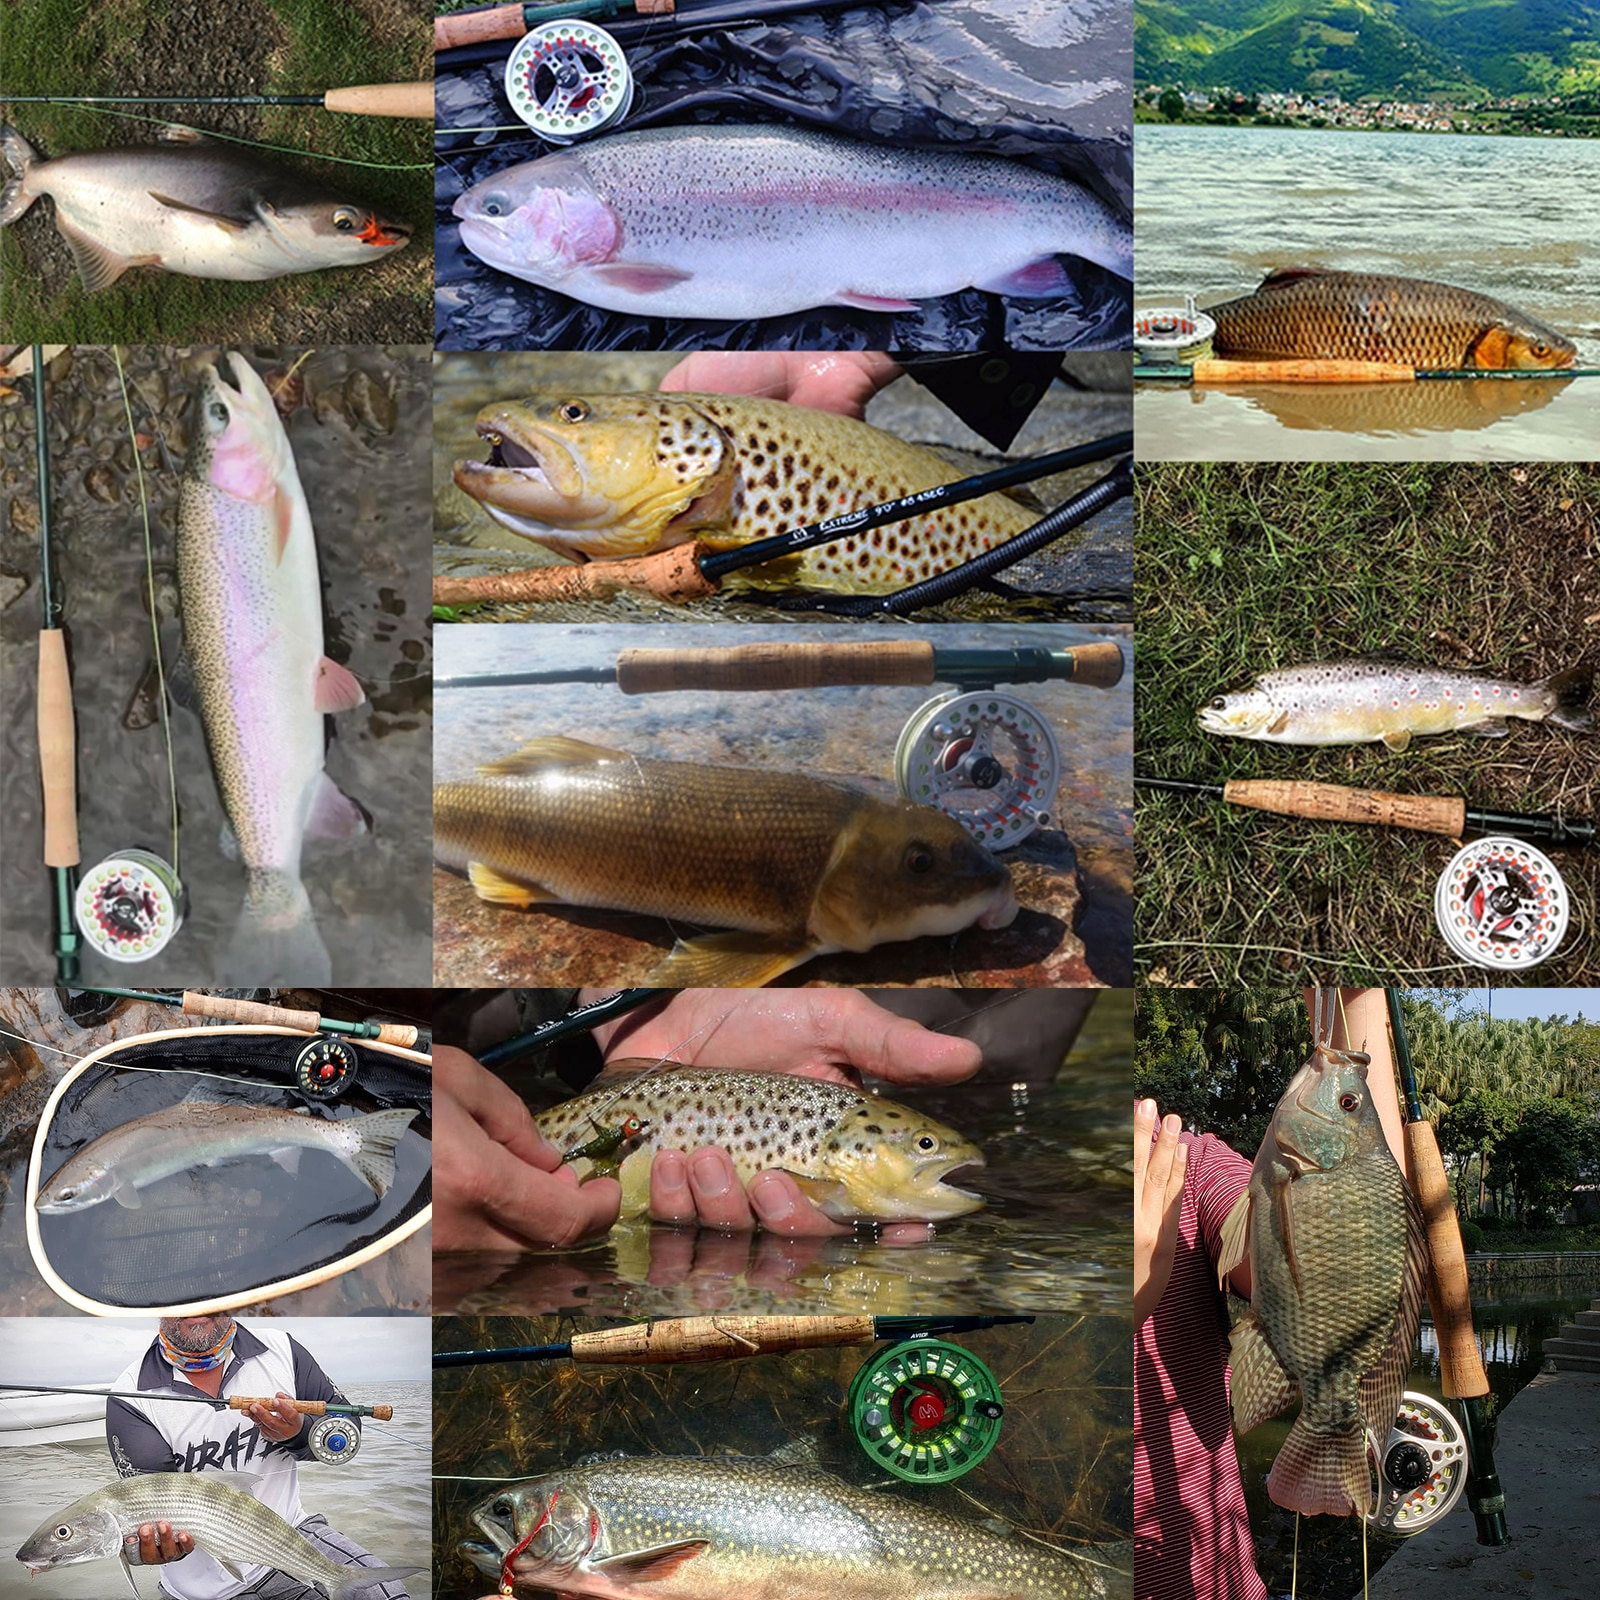 3-8WT Fly Fishing Combo 8'6''/9' Medium-fast Fly Rod Pre-spooled Fly Reel&Fly Line With Cordura Triangle Tube enlarge